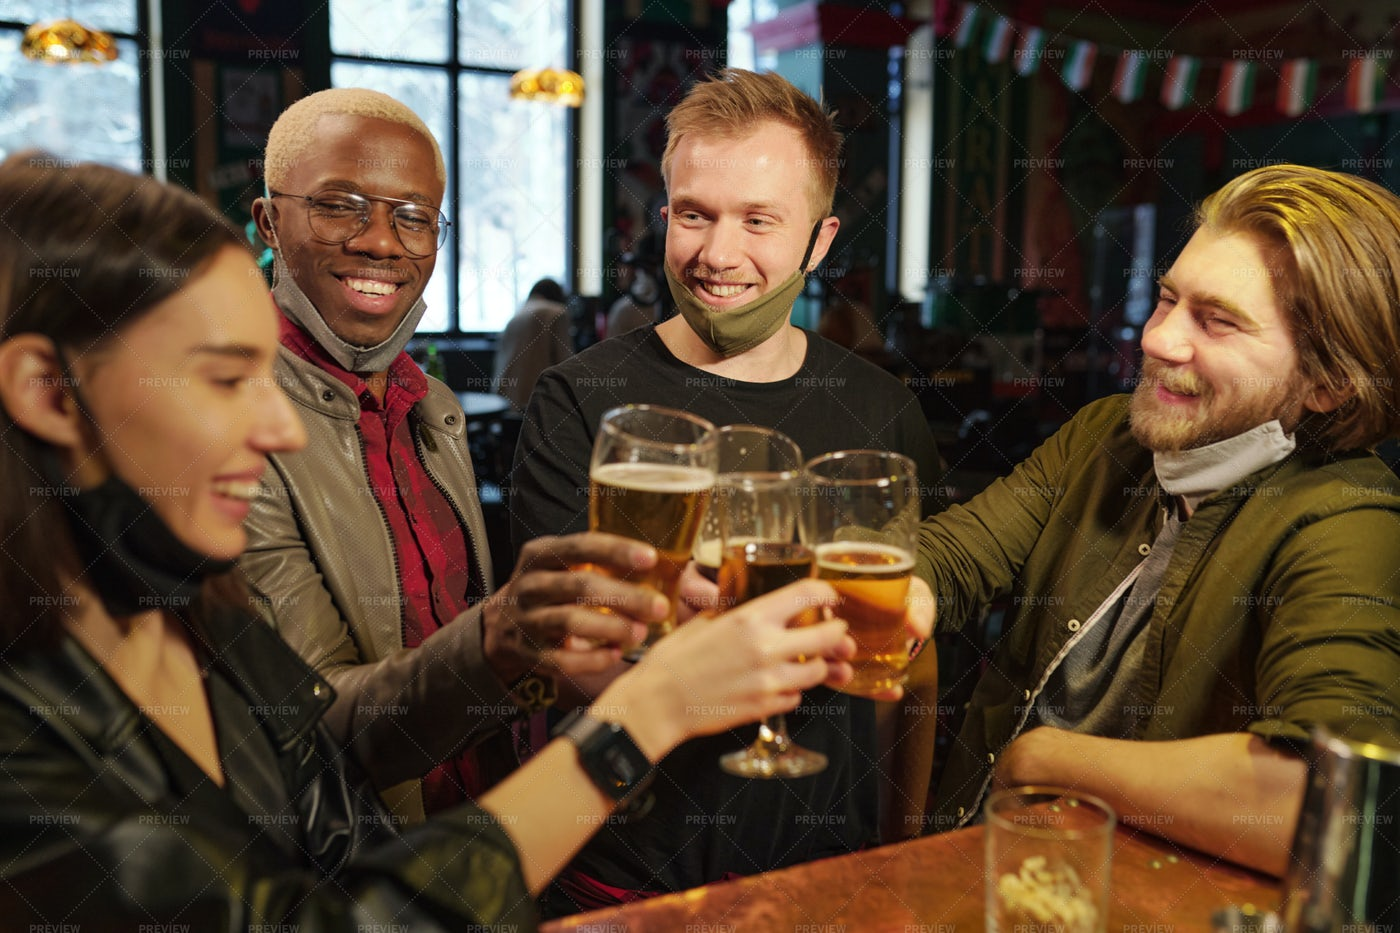 Football Fans Clinking Beer Glasses: Stock Photos